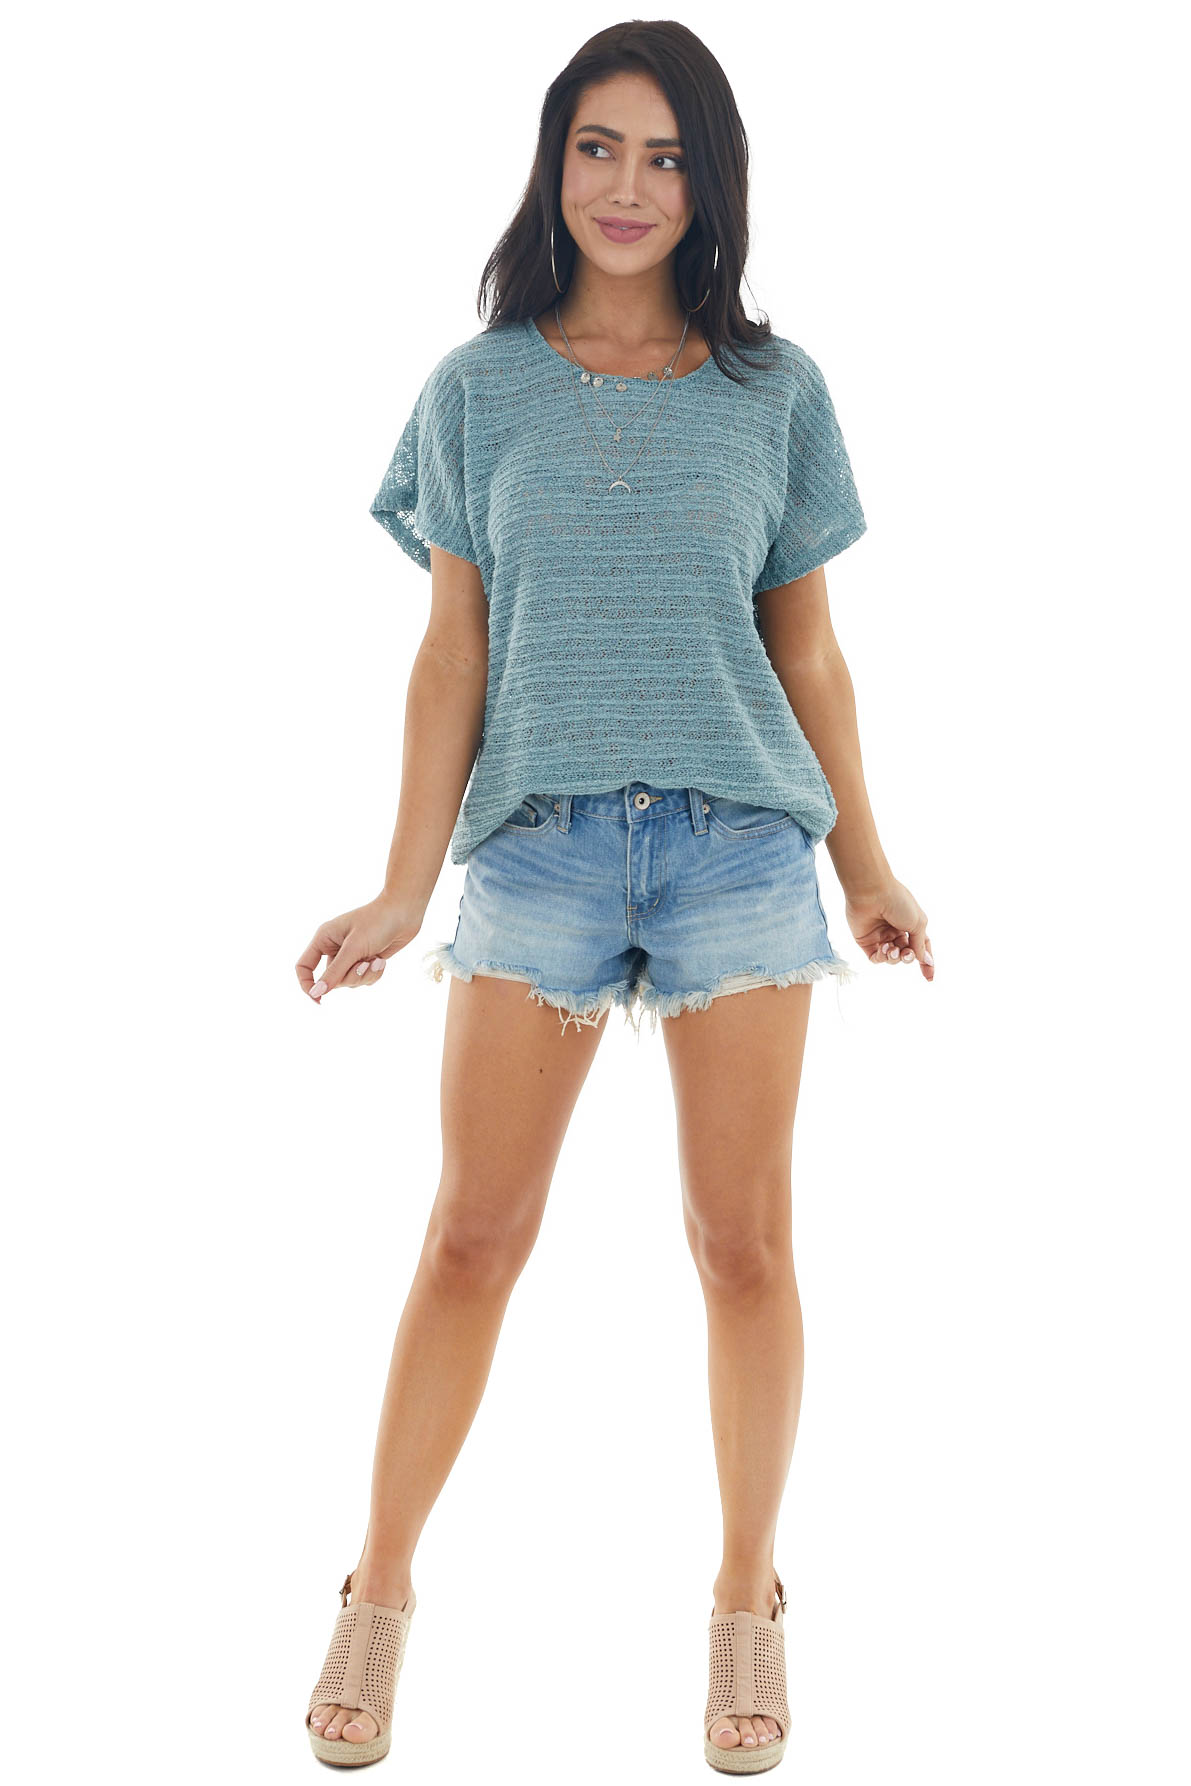 Light Juniper Stretchy Loose Knit Top with Short Sleeves